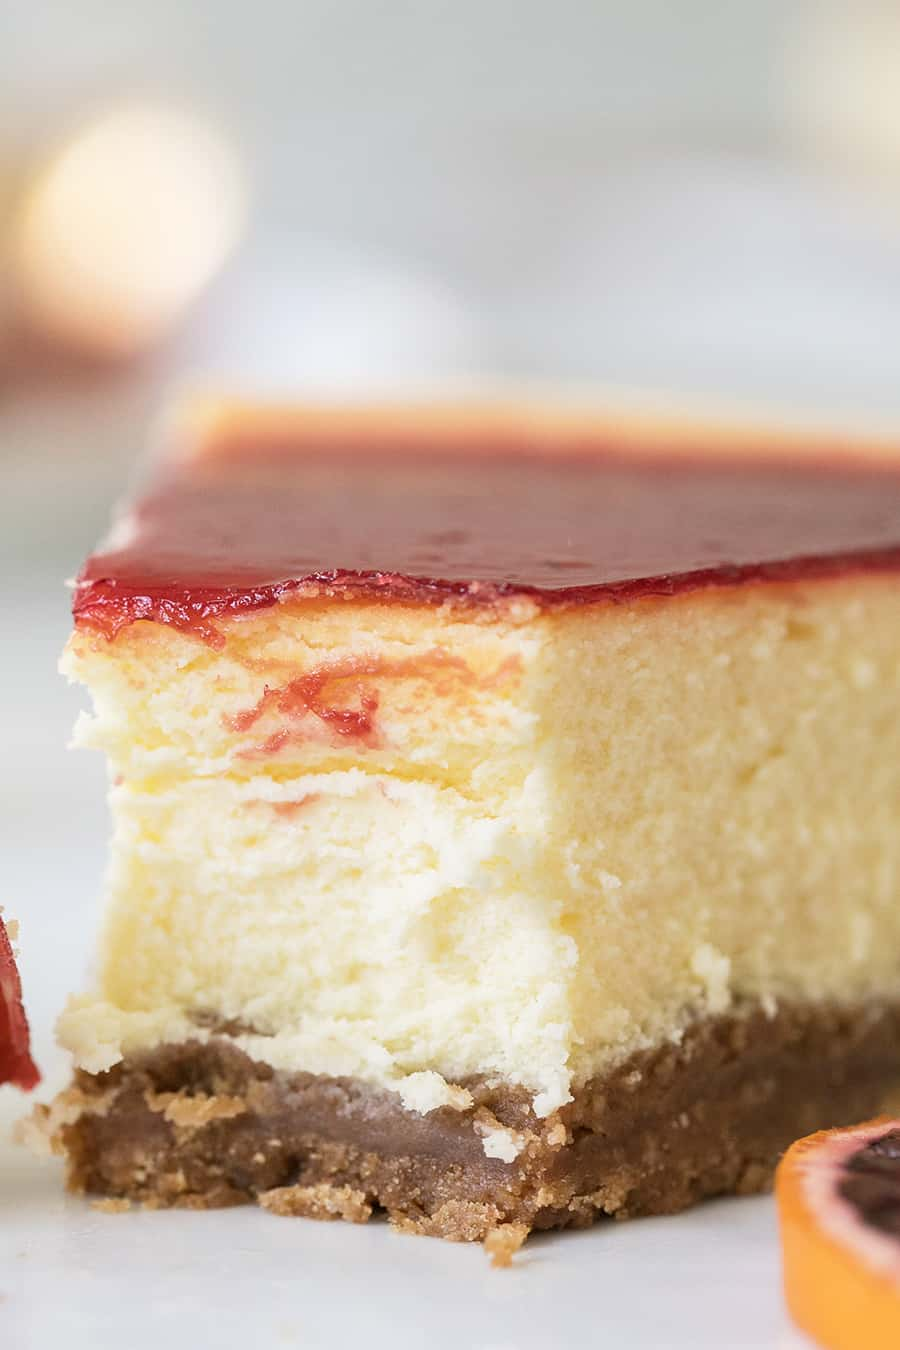 Slice of cheesecake with blood orange sauce.